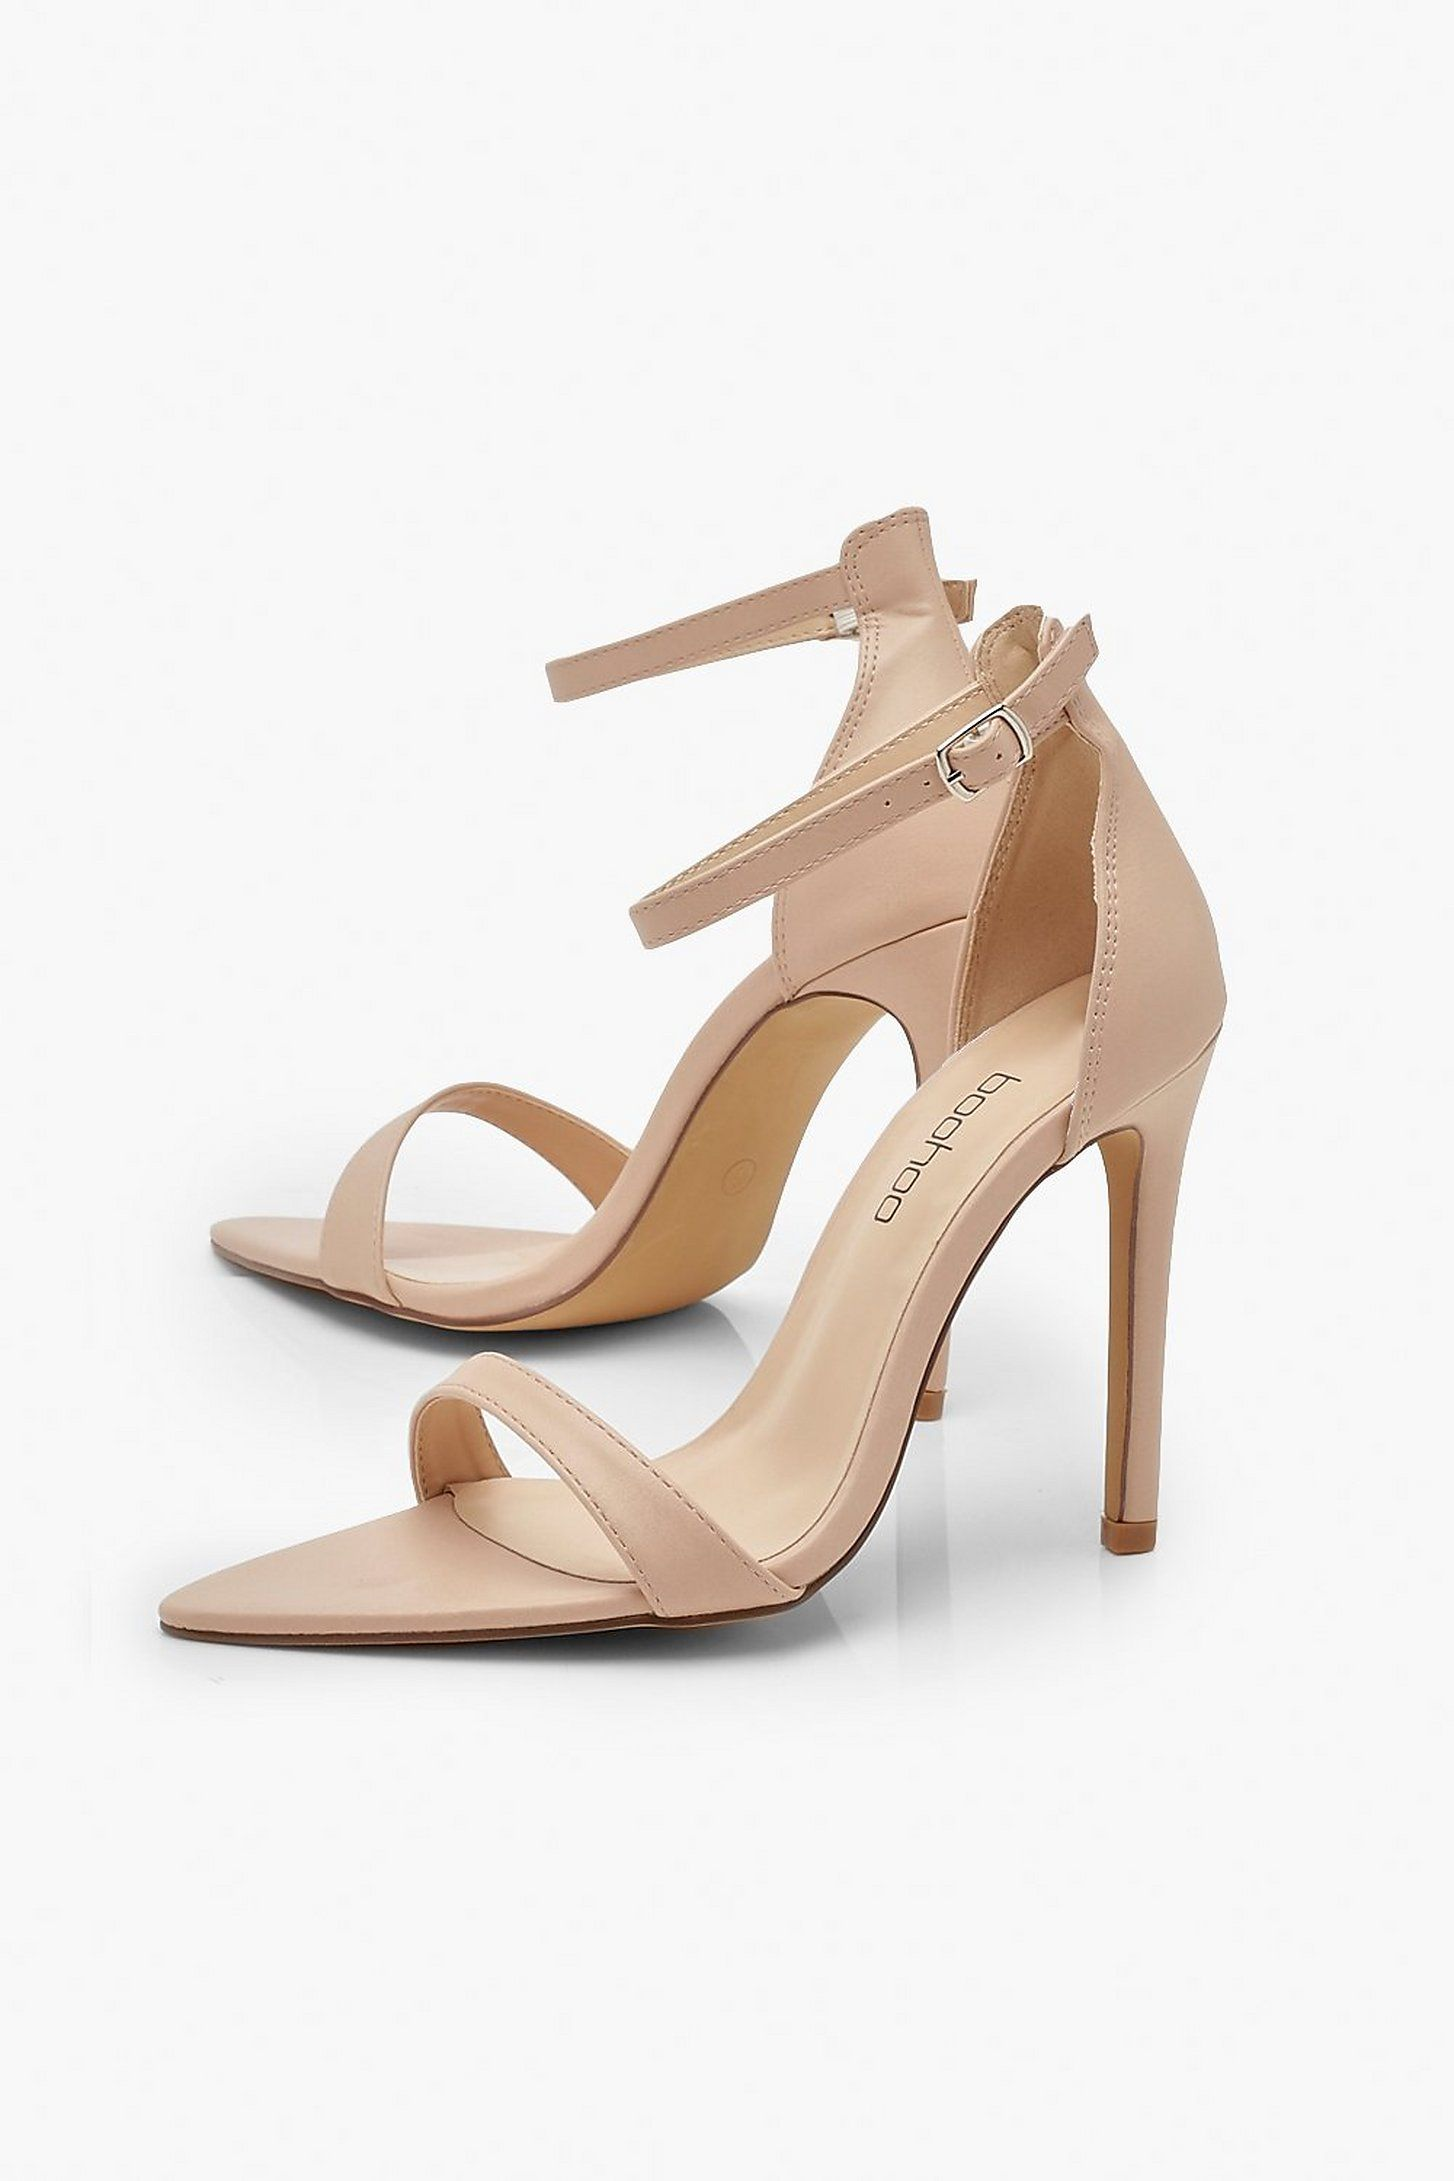 Pointed Toe 2 Parts Heels Boohoo In 2020 Heels Pointed Toe Shoes Highest Heel Collection